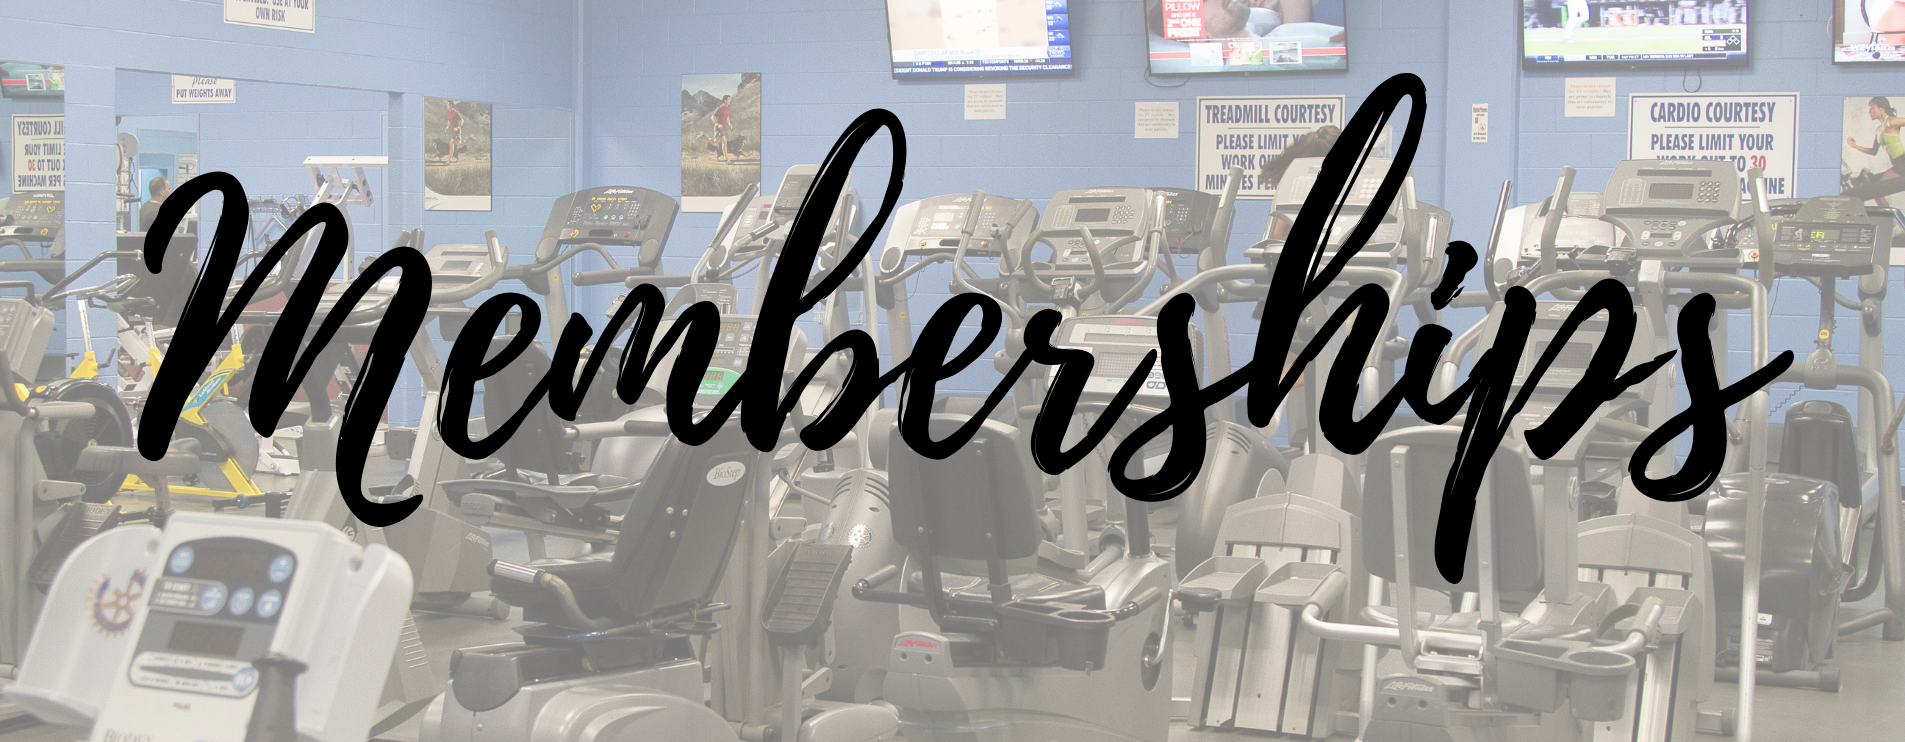 Memberships - Picture of weight room